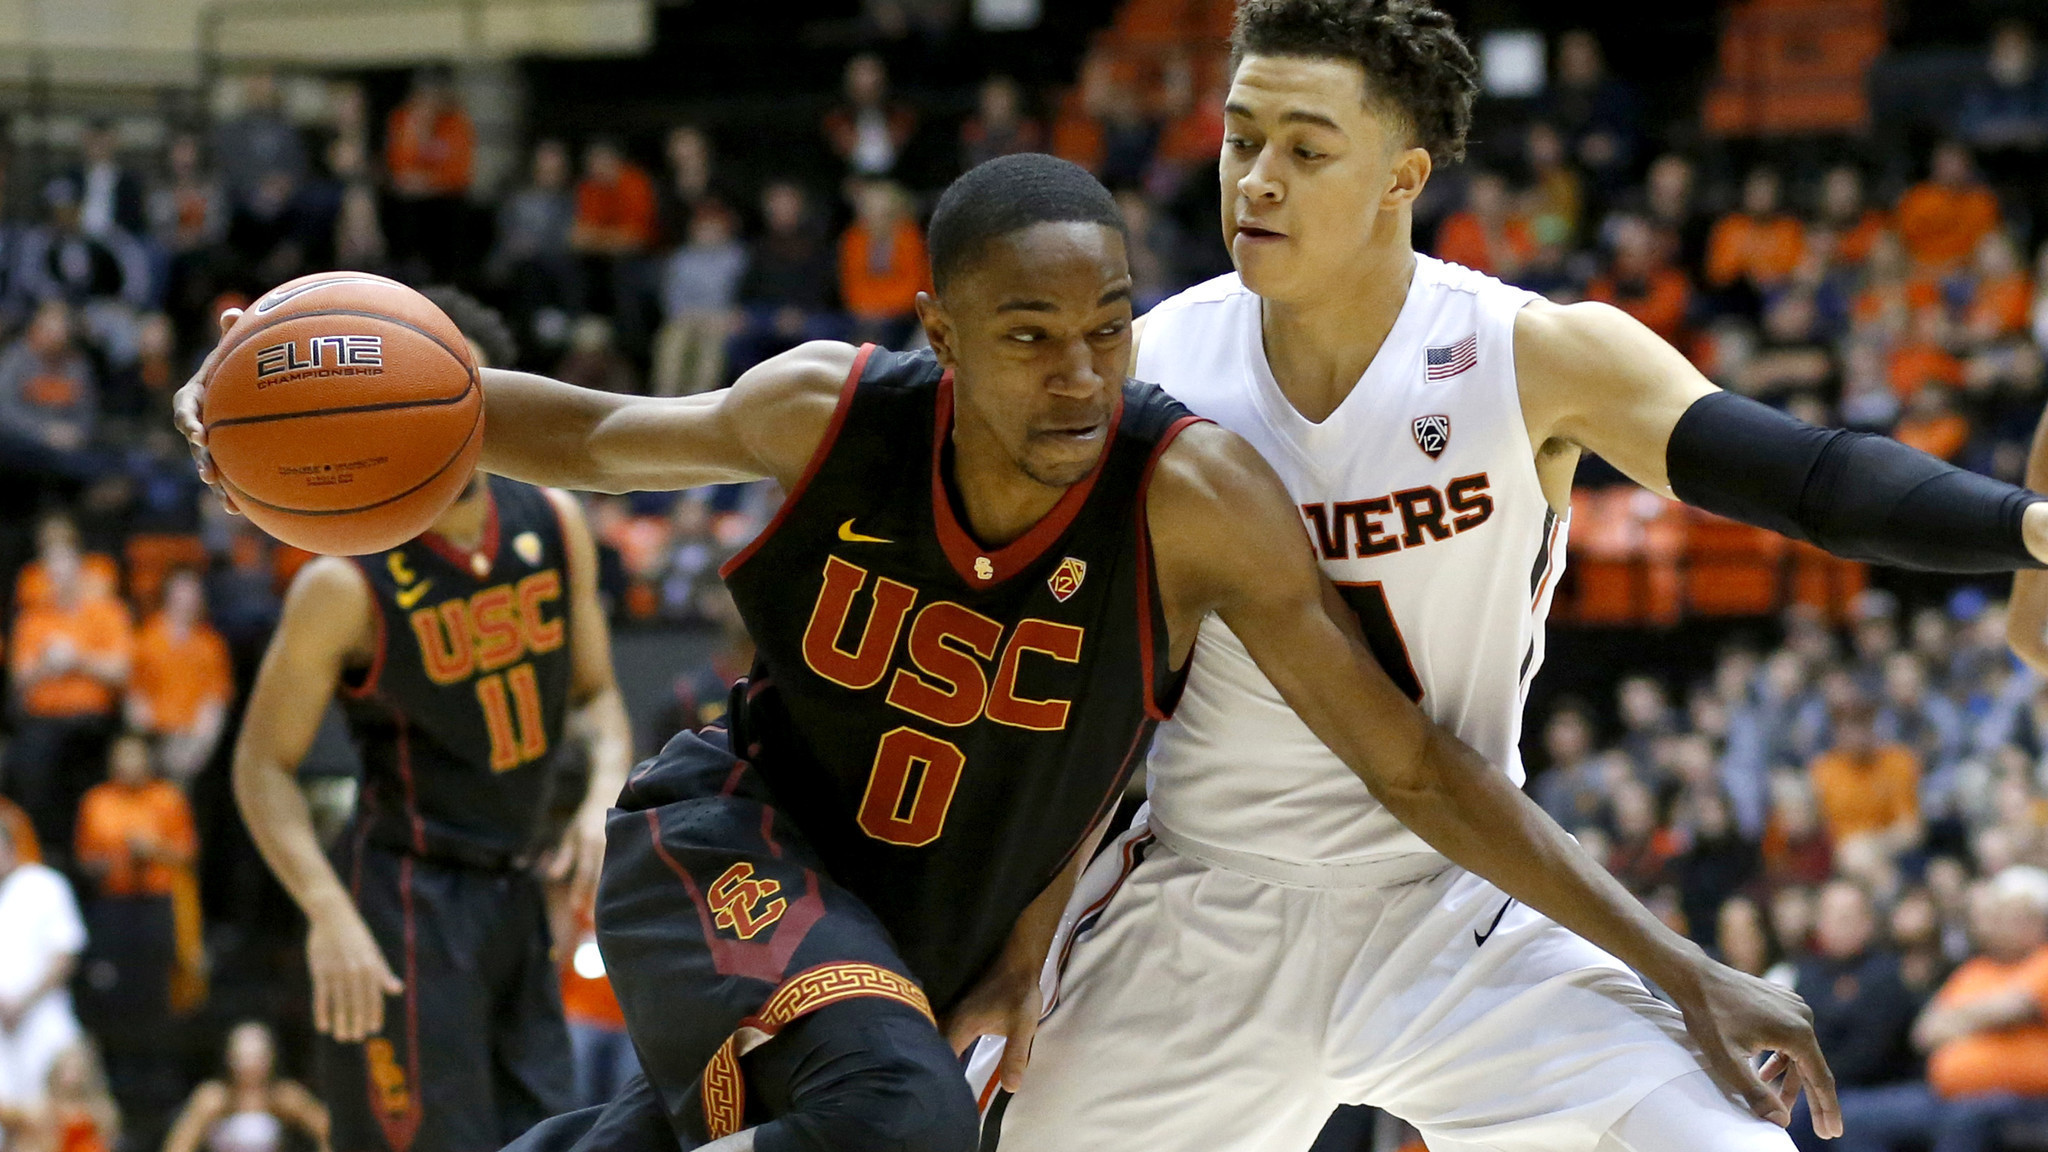 ae3cf6bf149 22 USC stayed undefeated with a 70-63 victory over Oregon State on  Wednesday night in the Pac-12 opener for both teams. Jordan McLaughlin  contributed 10 ...